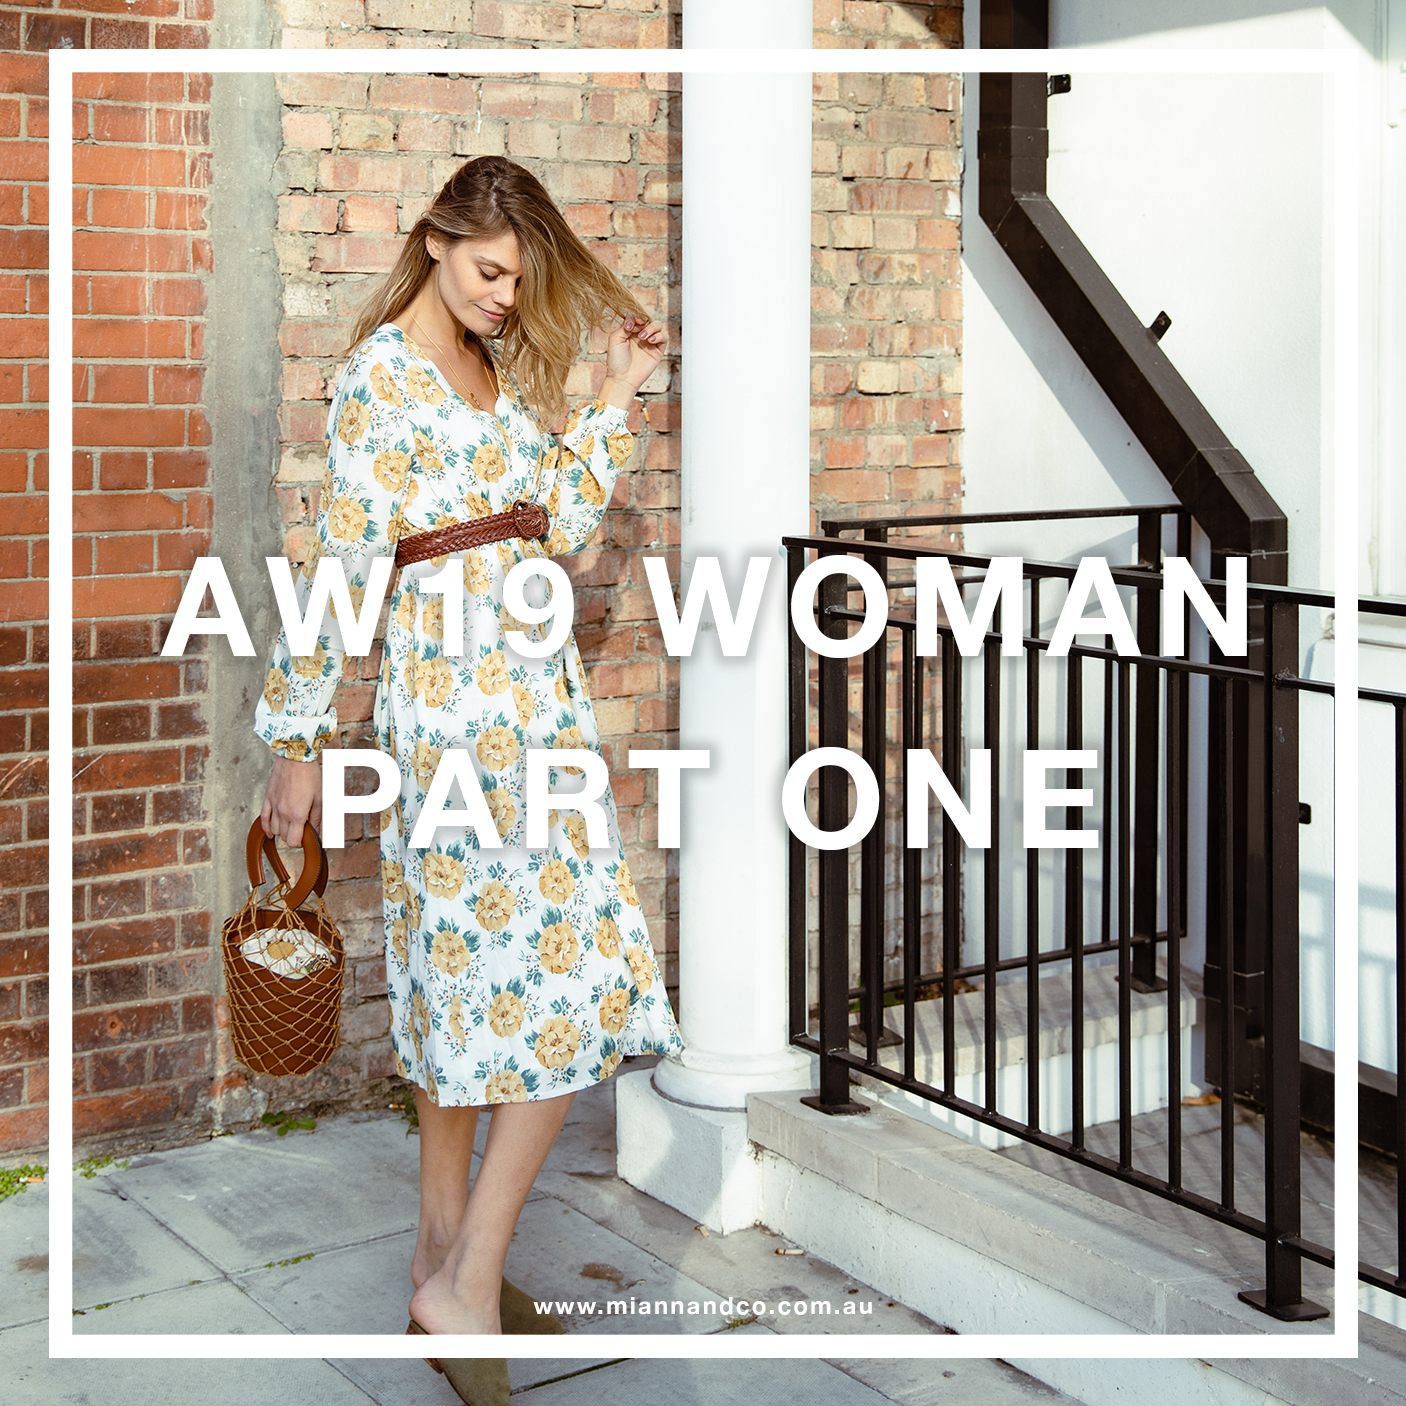 AW19 WOMAN PART ONE